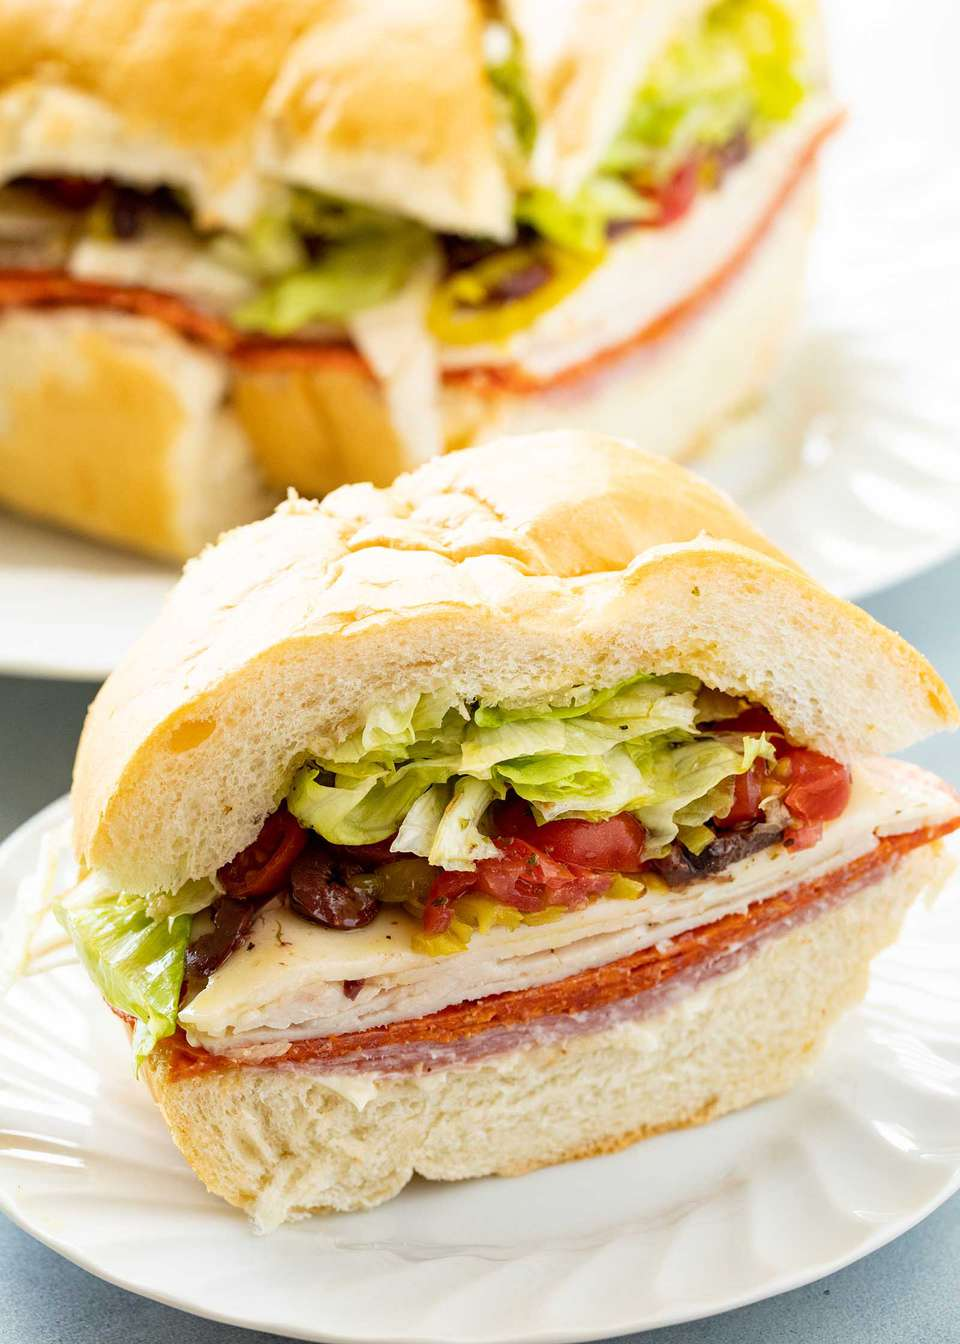 Italian sandwich for a crowd with the meat, cheese and toppings visible.